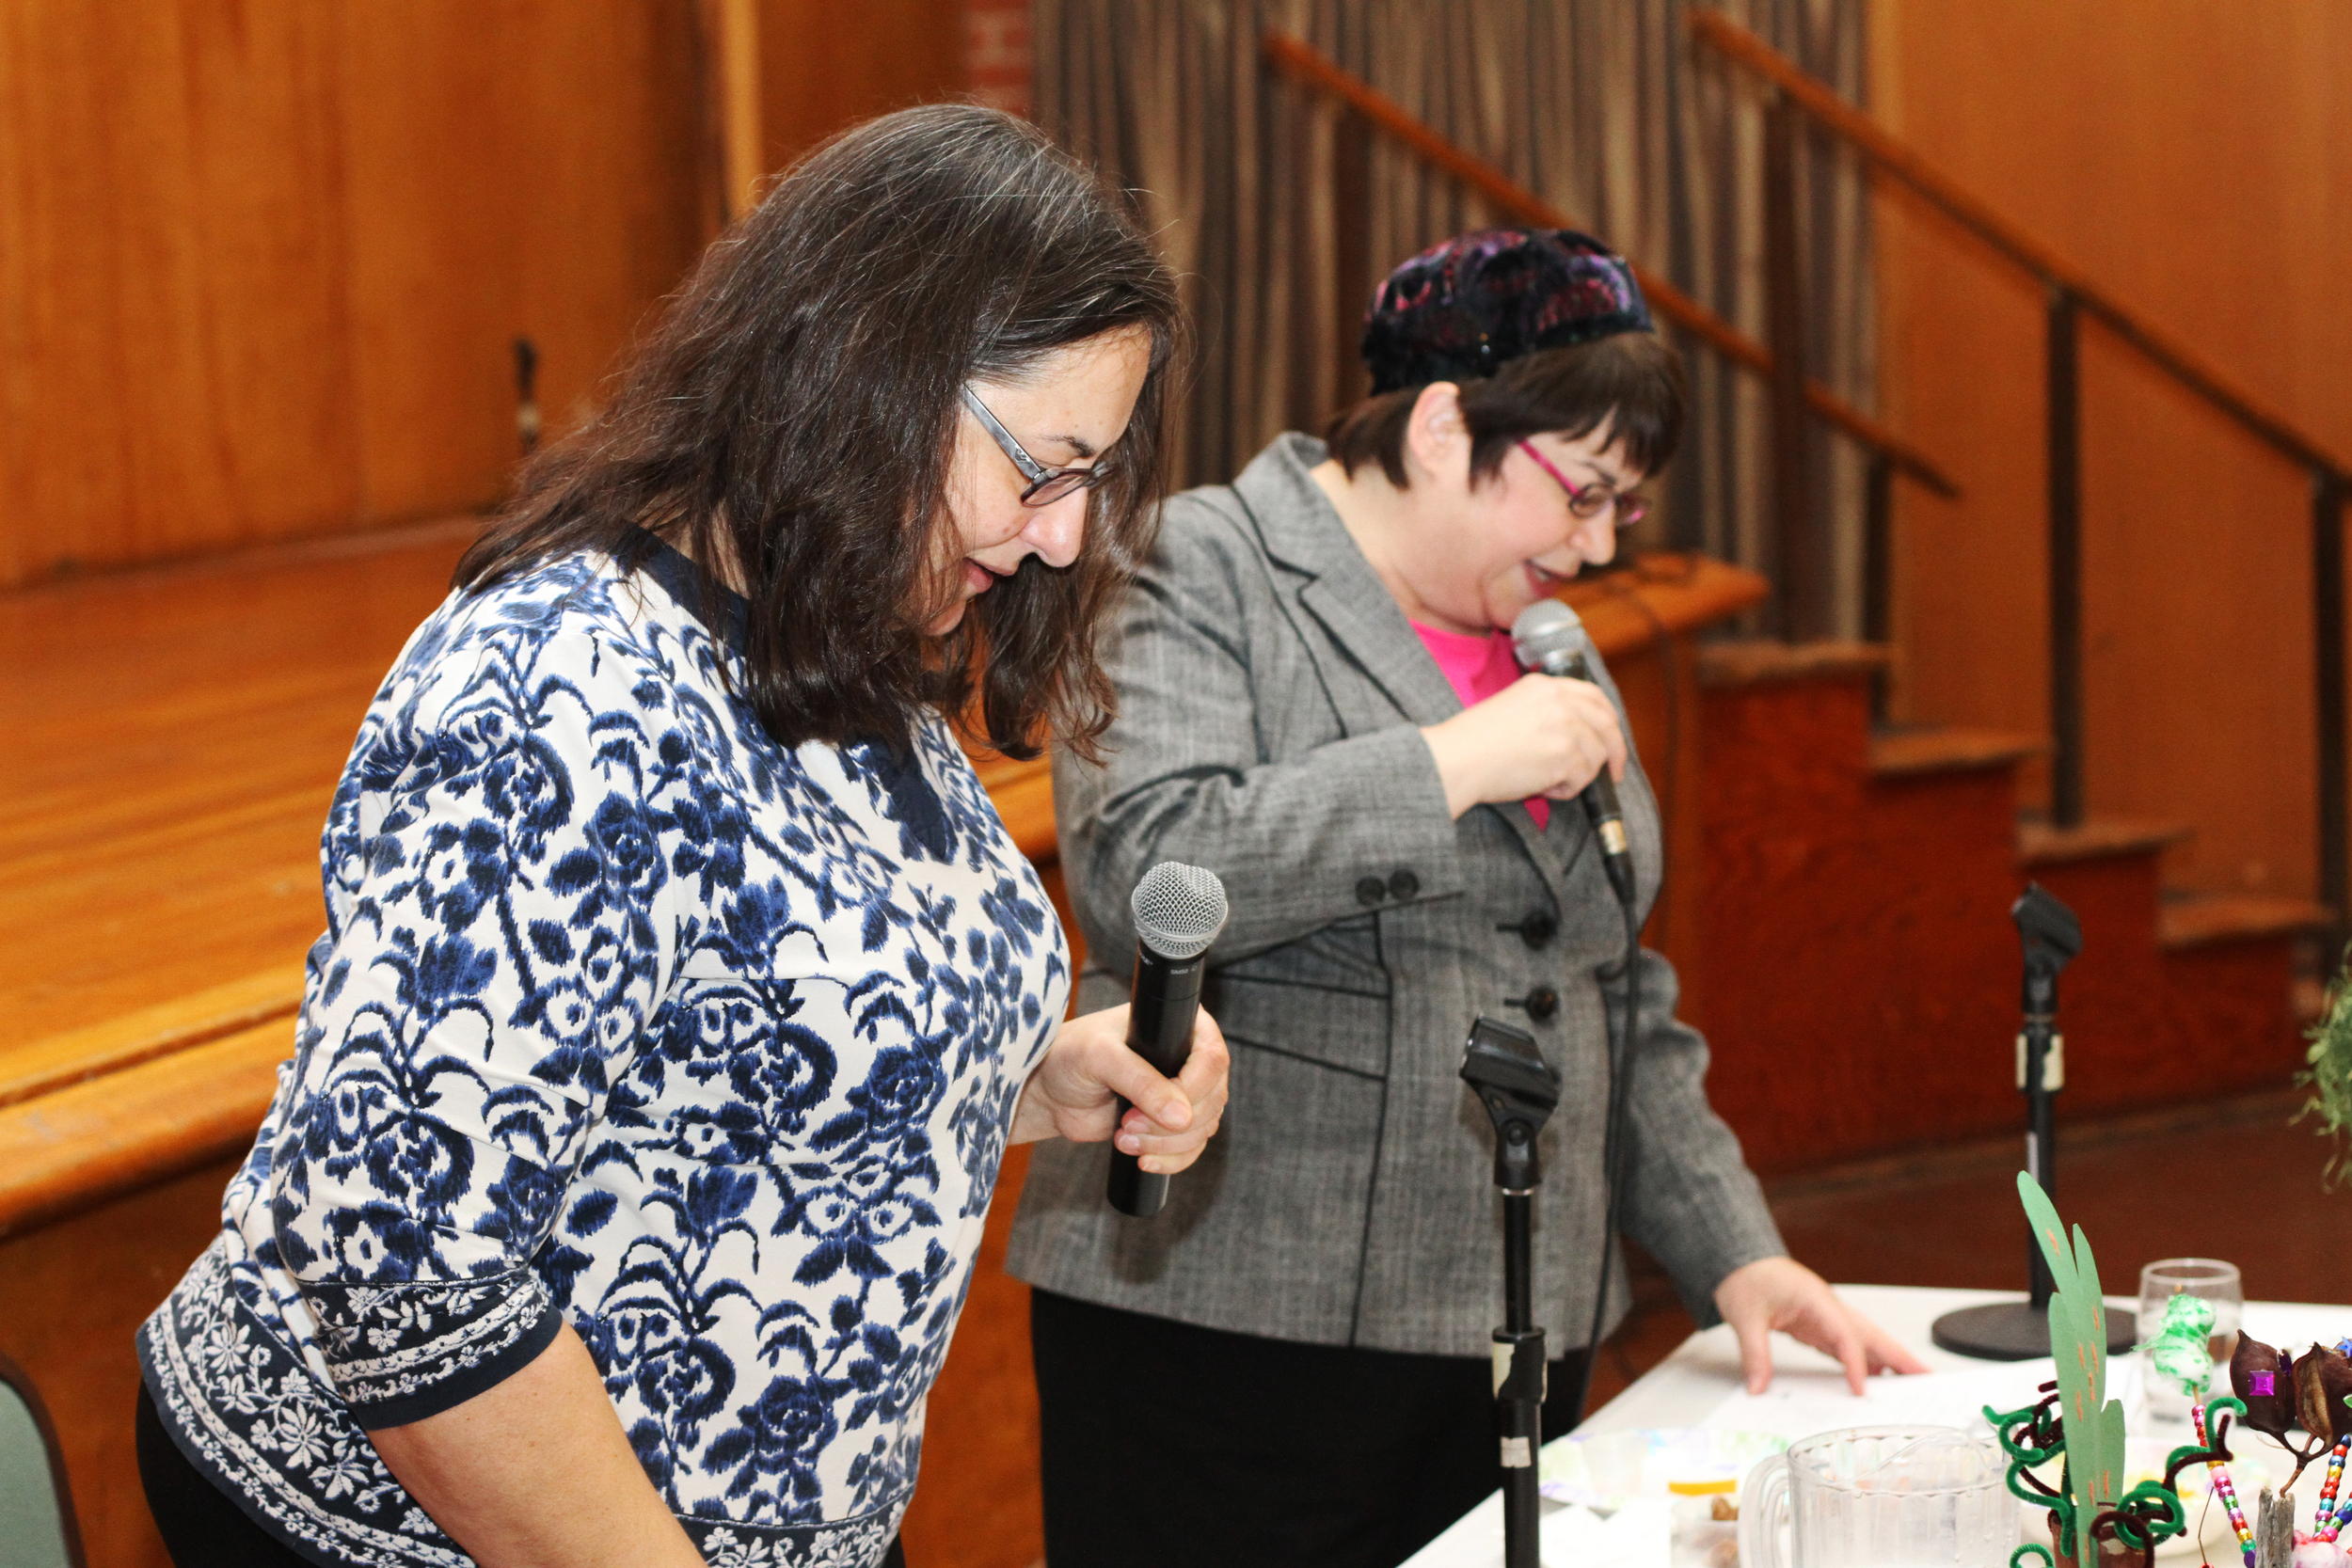 Clergy leading the service at Temple Emanu-El.